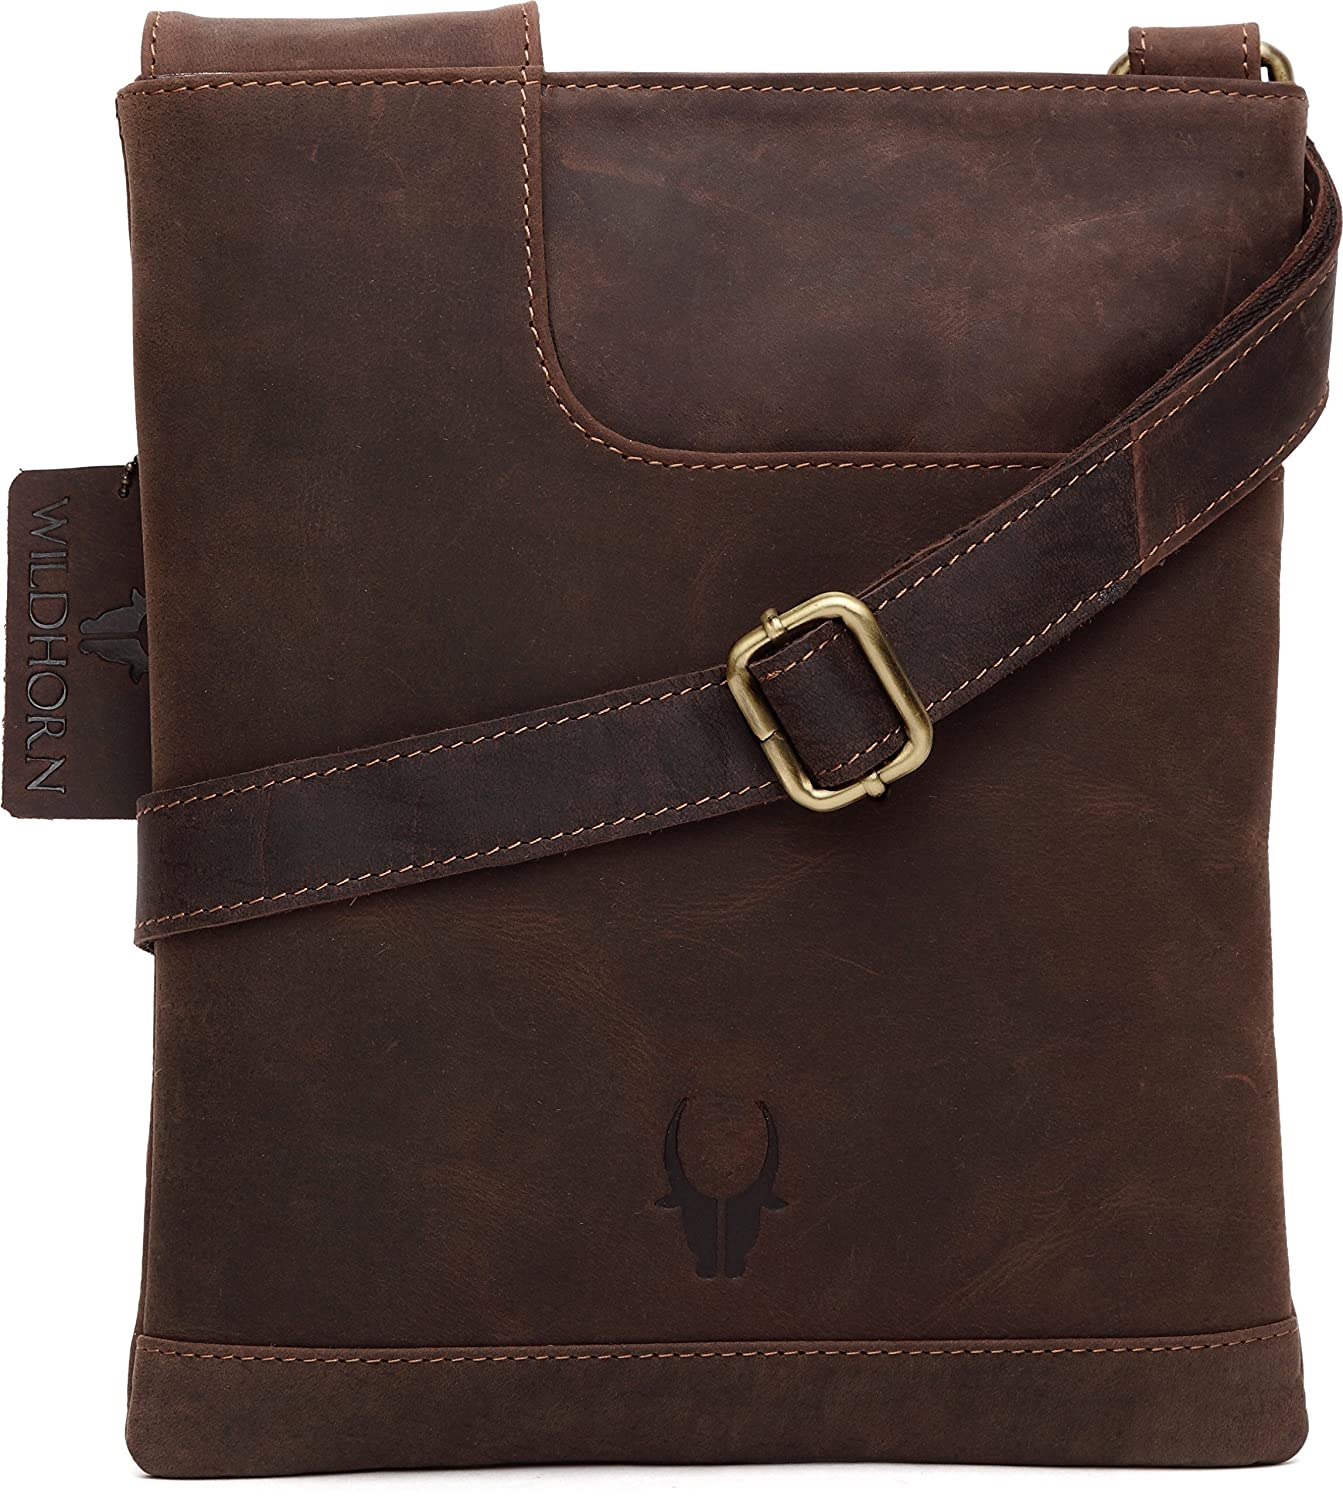 WildHorn Leather 21.59 cms Brown Messenger Bag (WHM207)  Amazon.in  Bags 5c55c8d9cd535